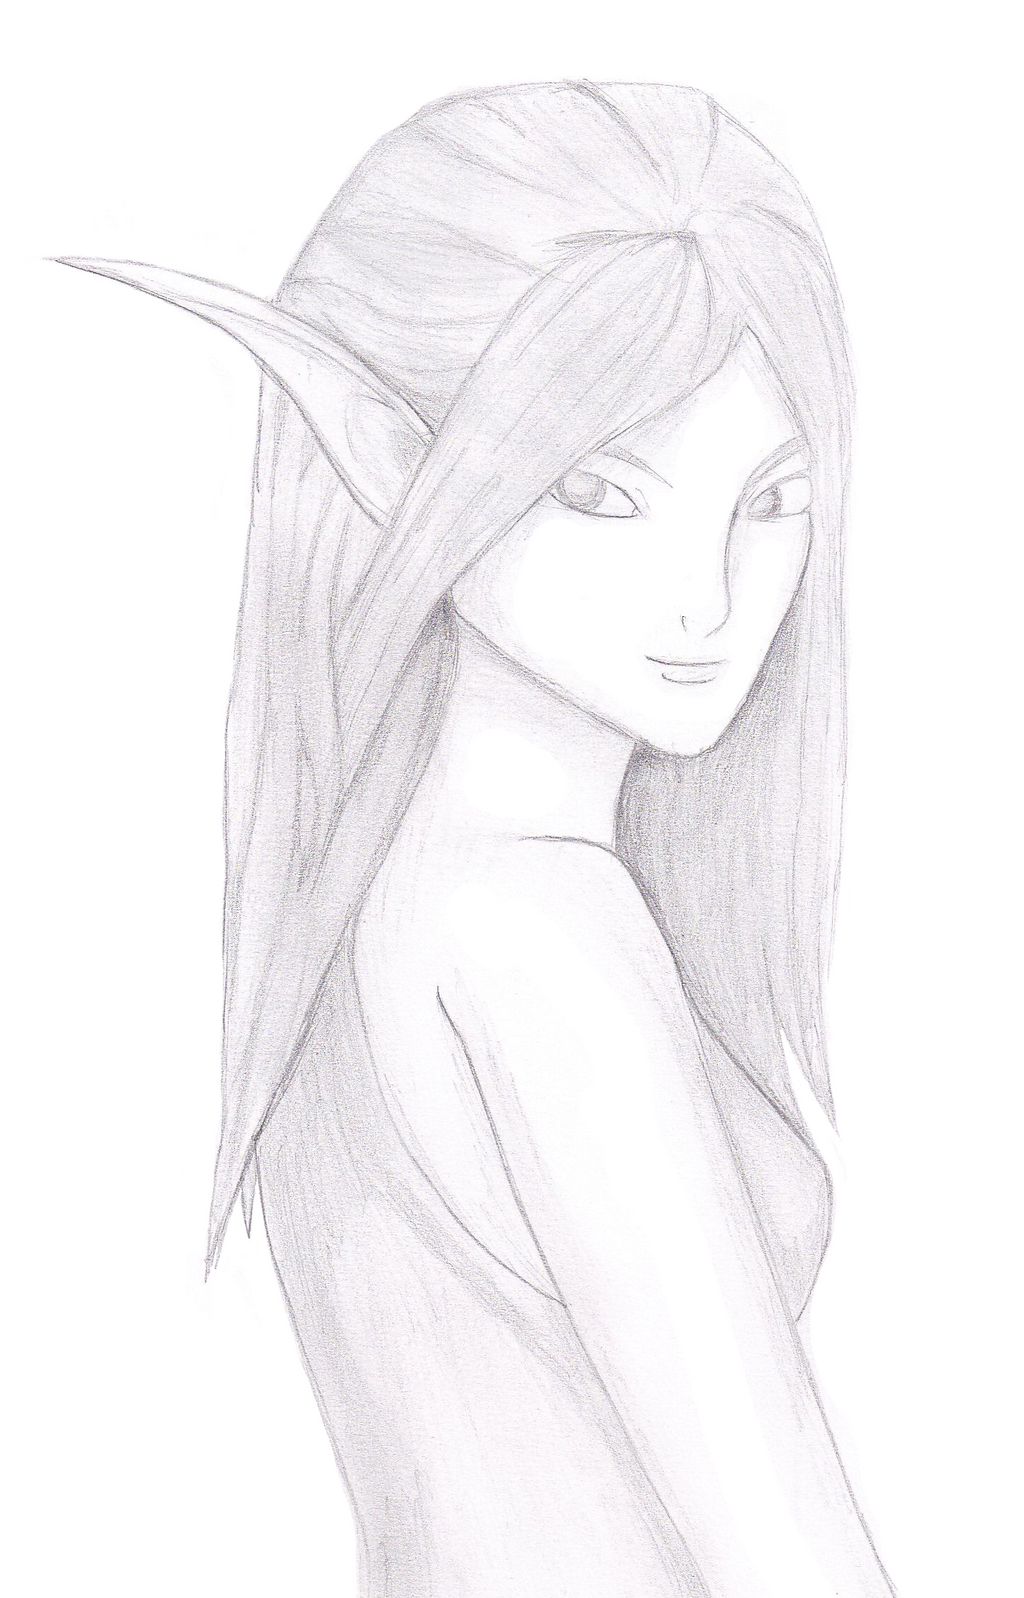 Elf by CyclesofShadows